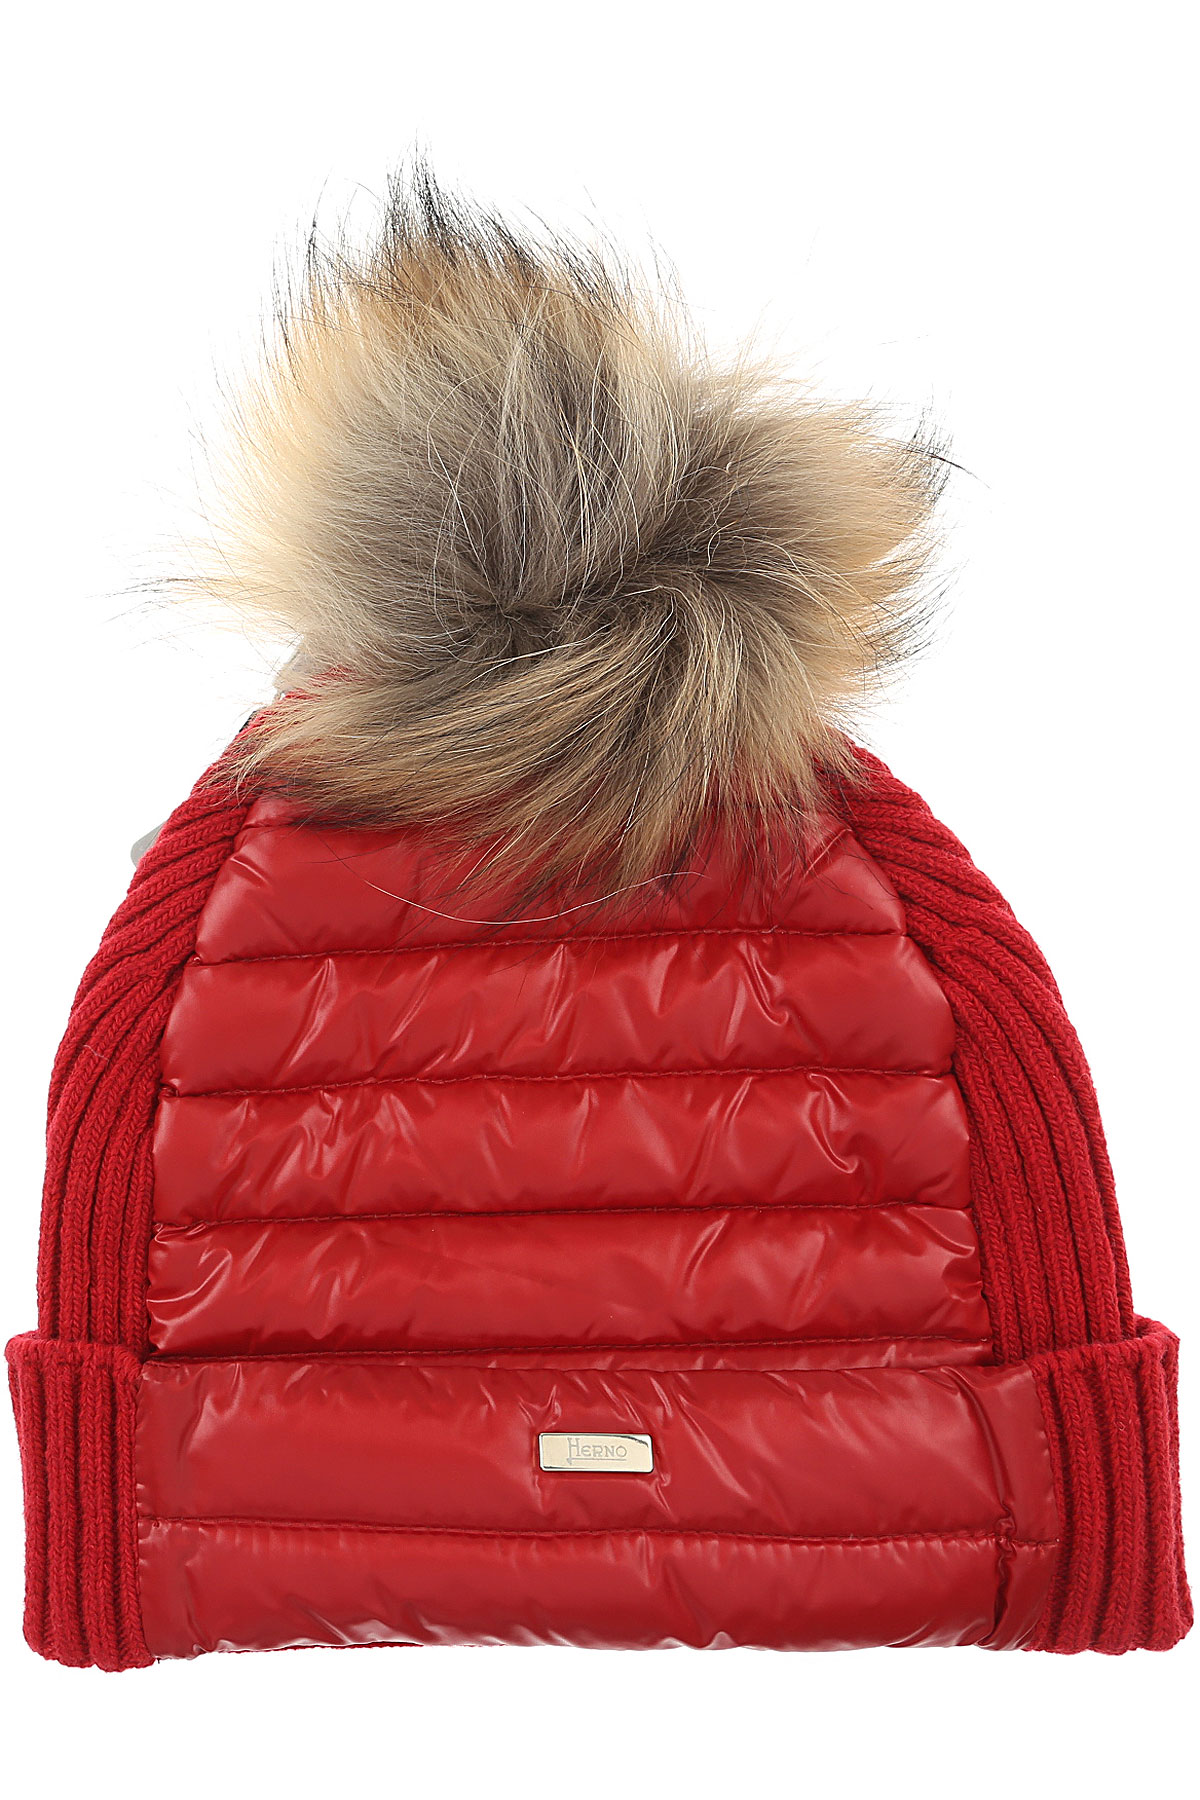 Image of Herno Kids Hats for Girls, Red, Wool, 2017, M L